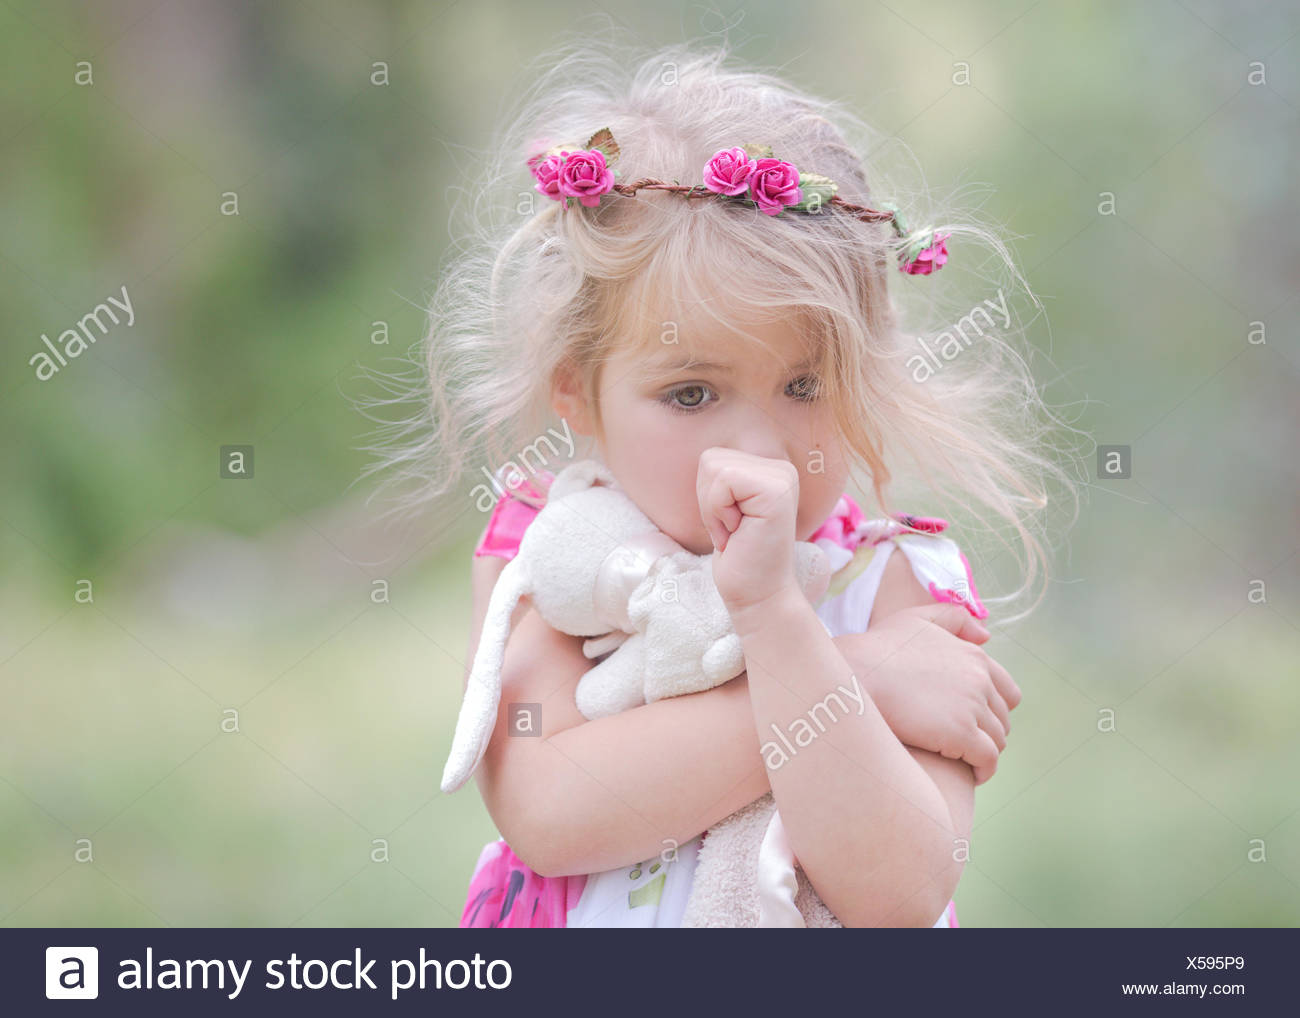 Portrait of a girl sucking her thumb and clutching her soft rabbit toy, California, USA Stock Photo